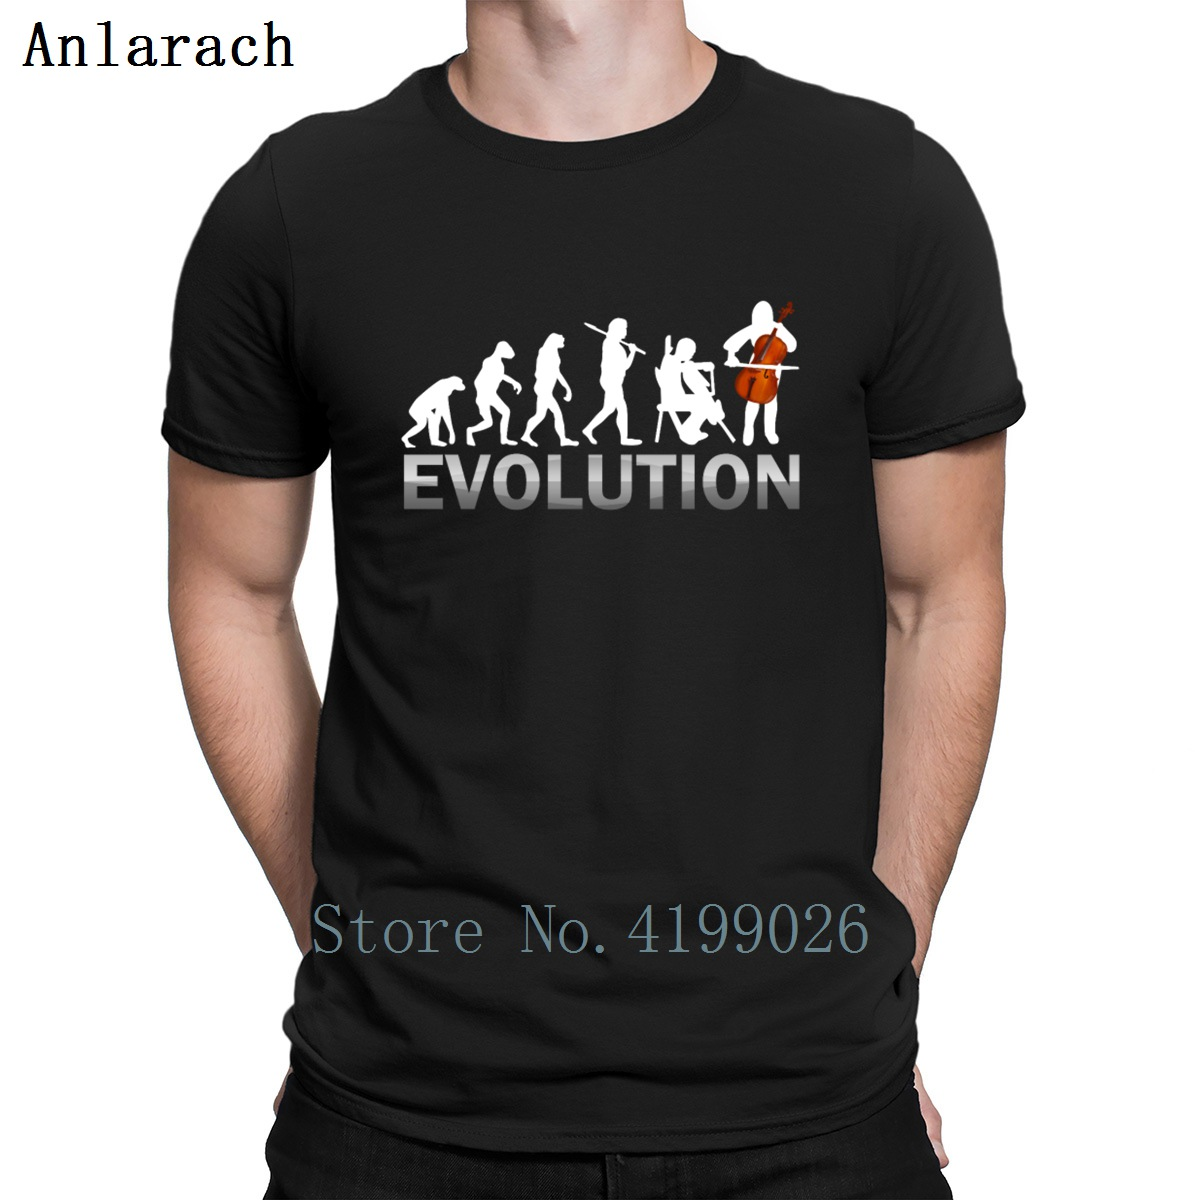 Cello Evolution T Shirt O Neck Fitness Letter The New Mens Streetwear Shirt Quirky Male Sunlight Designing Silly